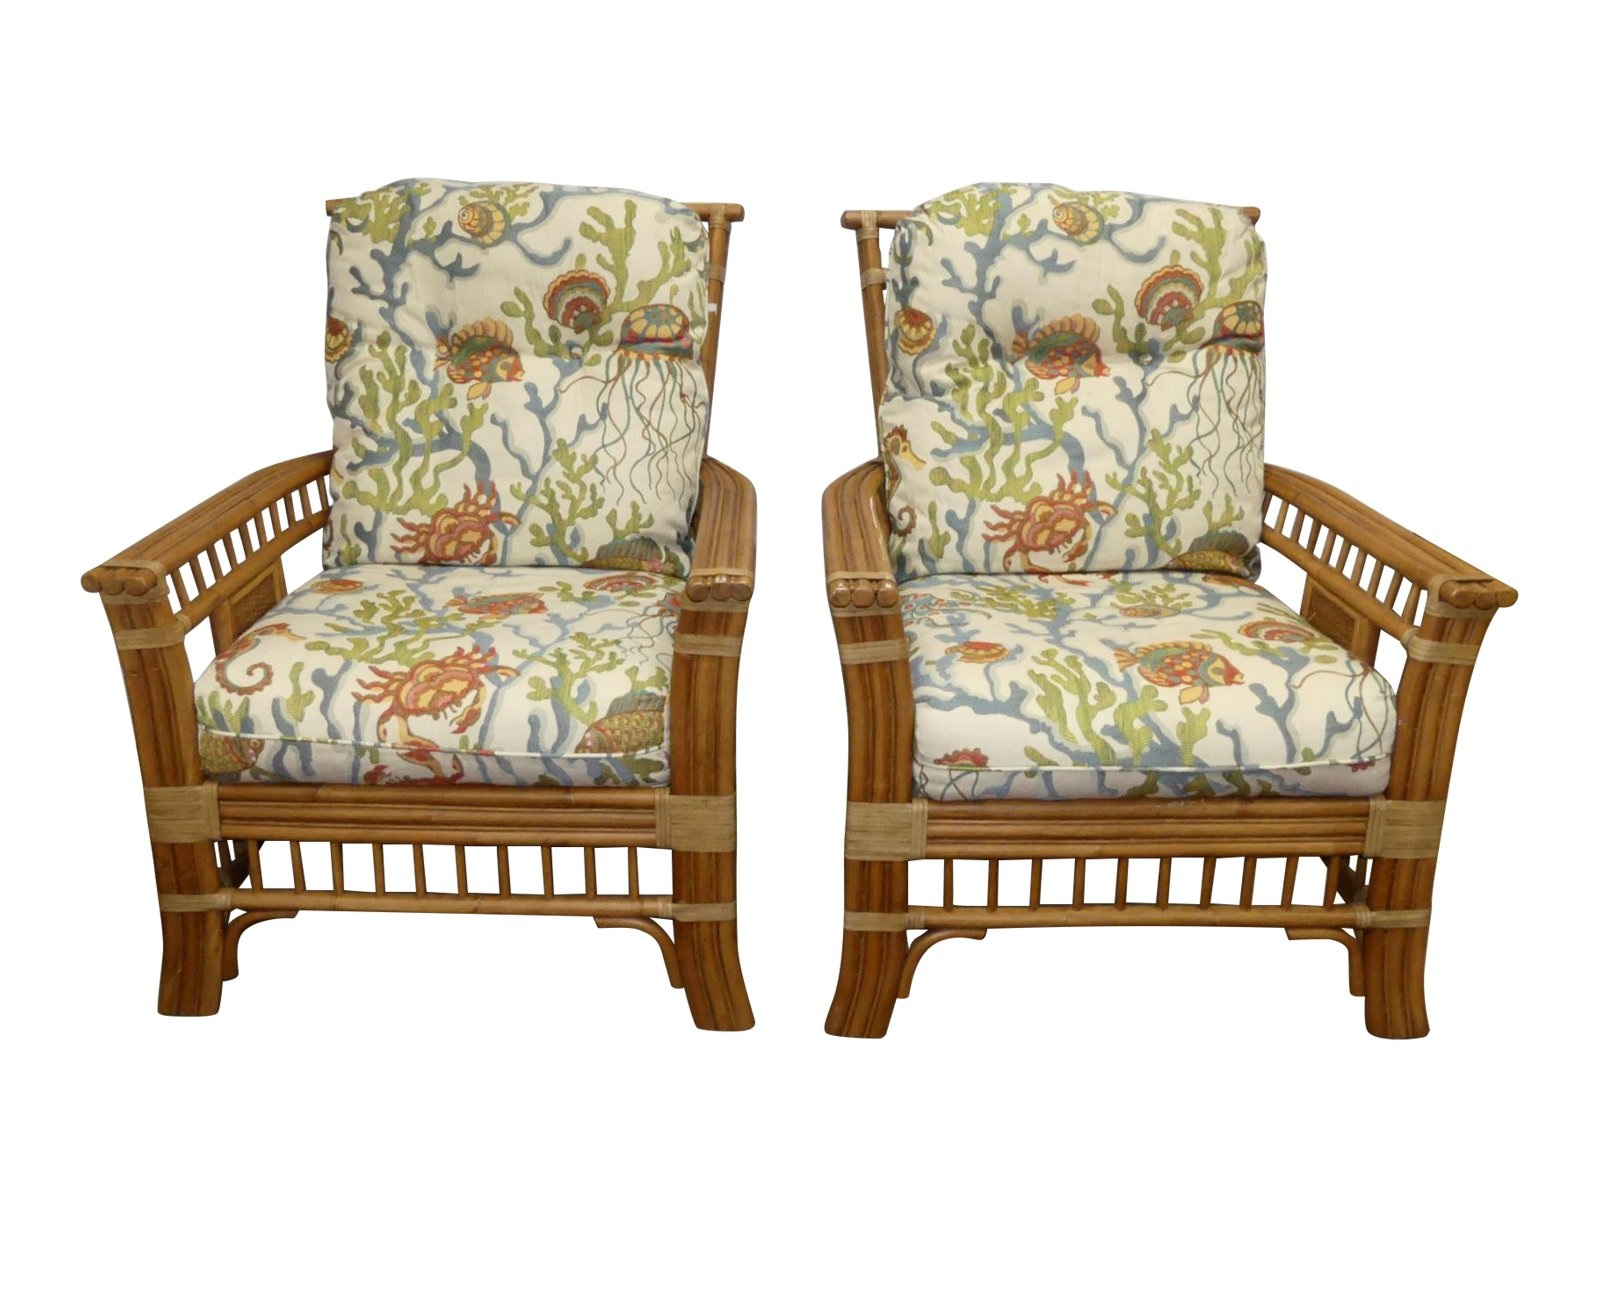 Pair of 2 Coastal Creations Rattan Armchairs with High-End Embroidered Crewel Fabric  $1,295